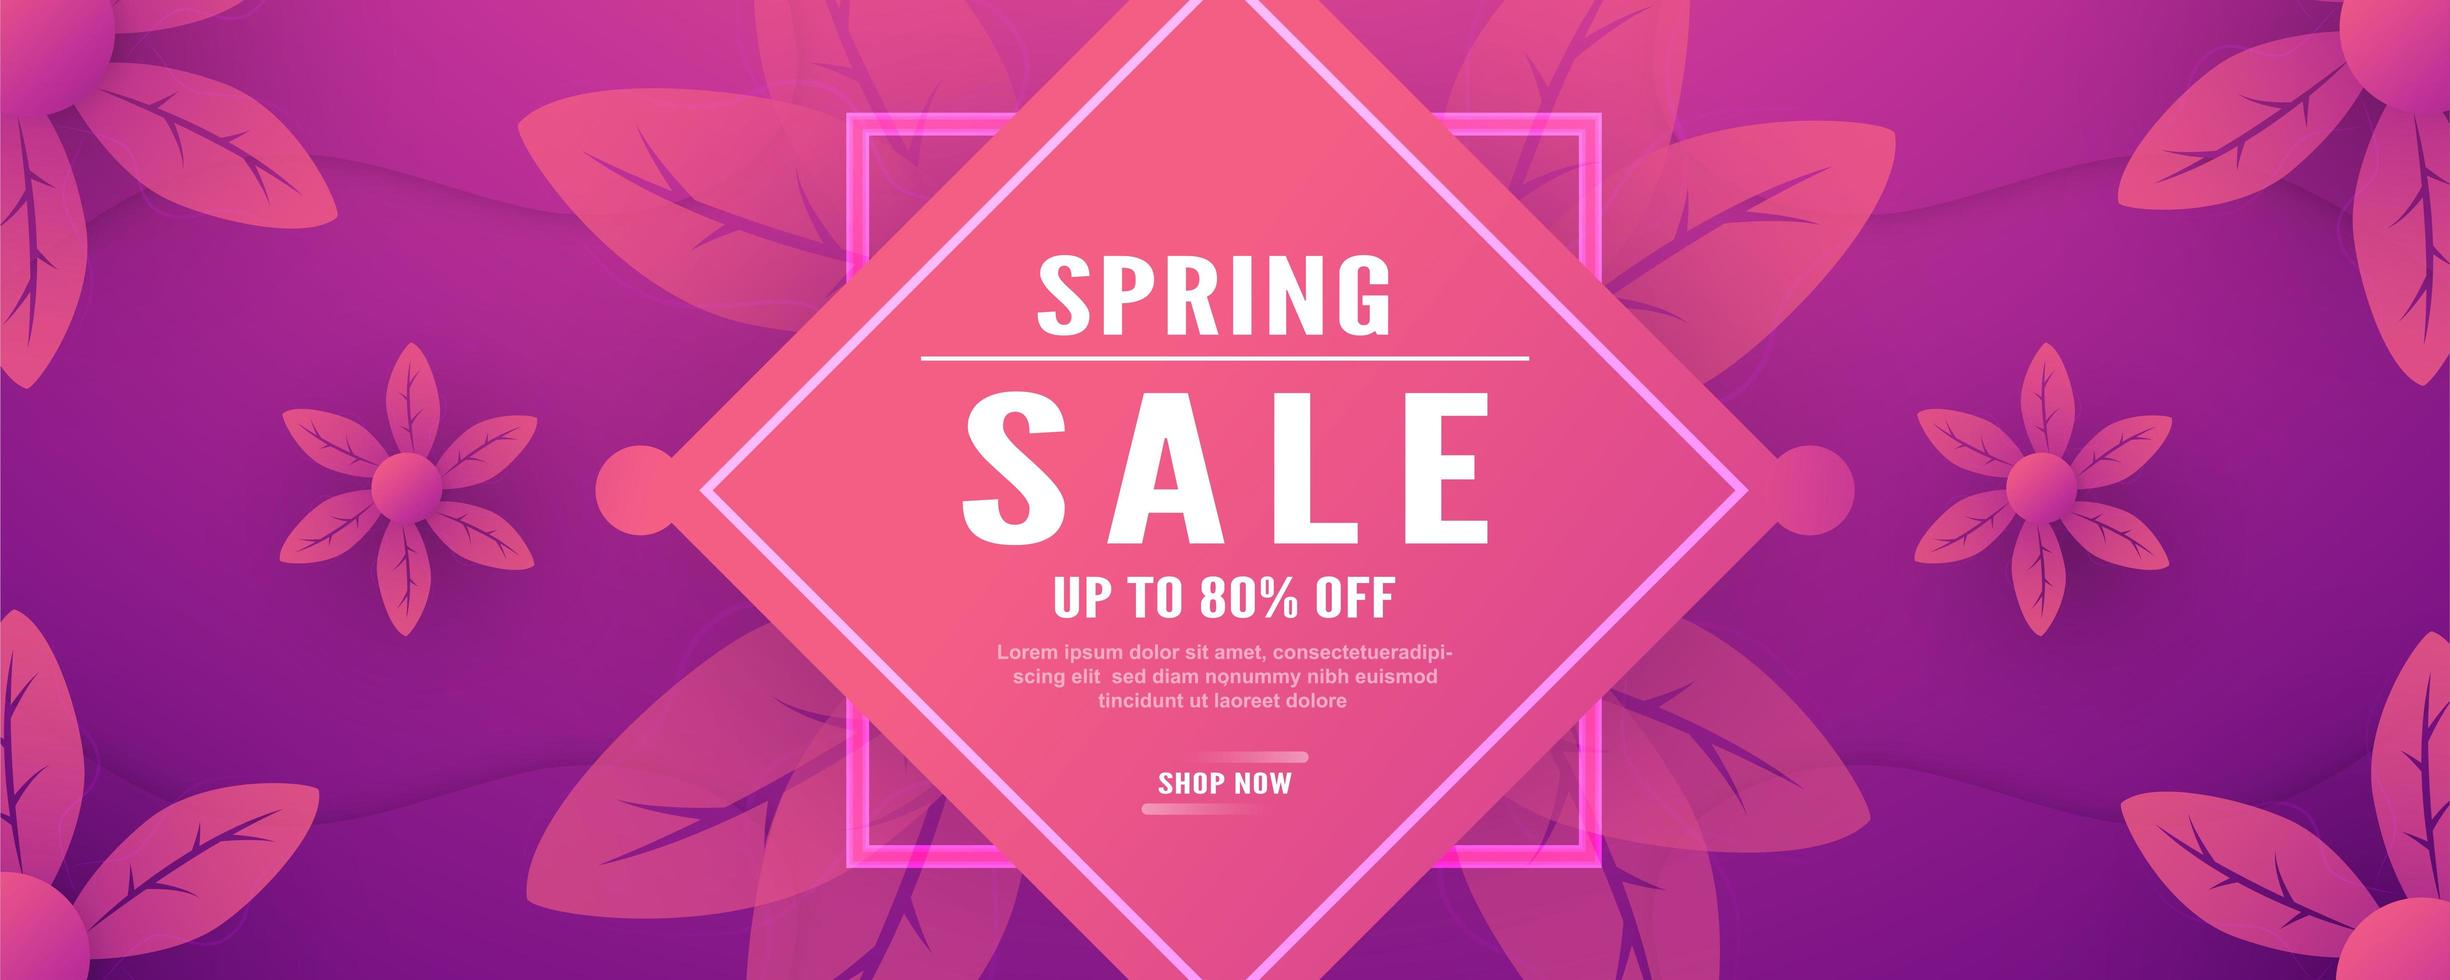 Pink and Purple Floral Spring Sales Banner  vector